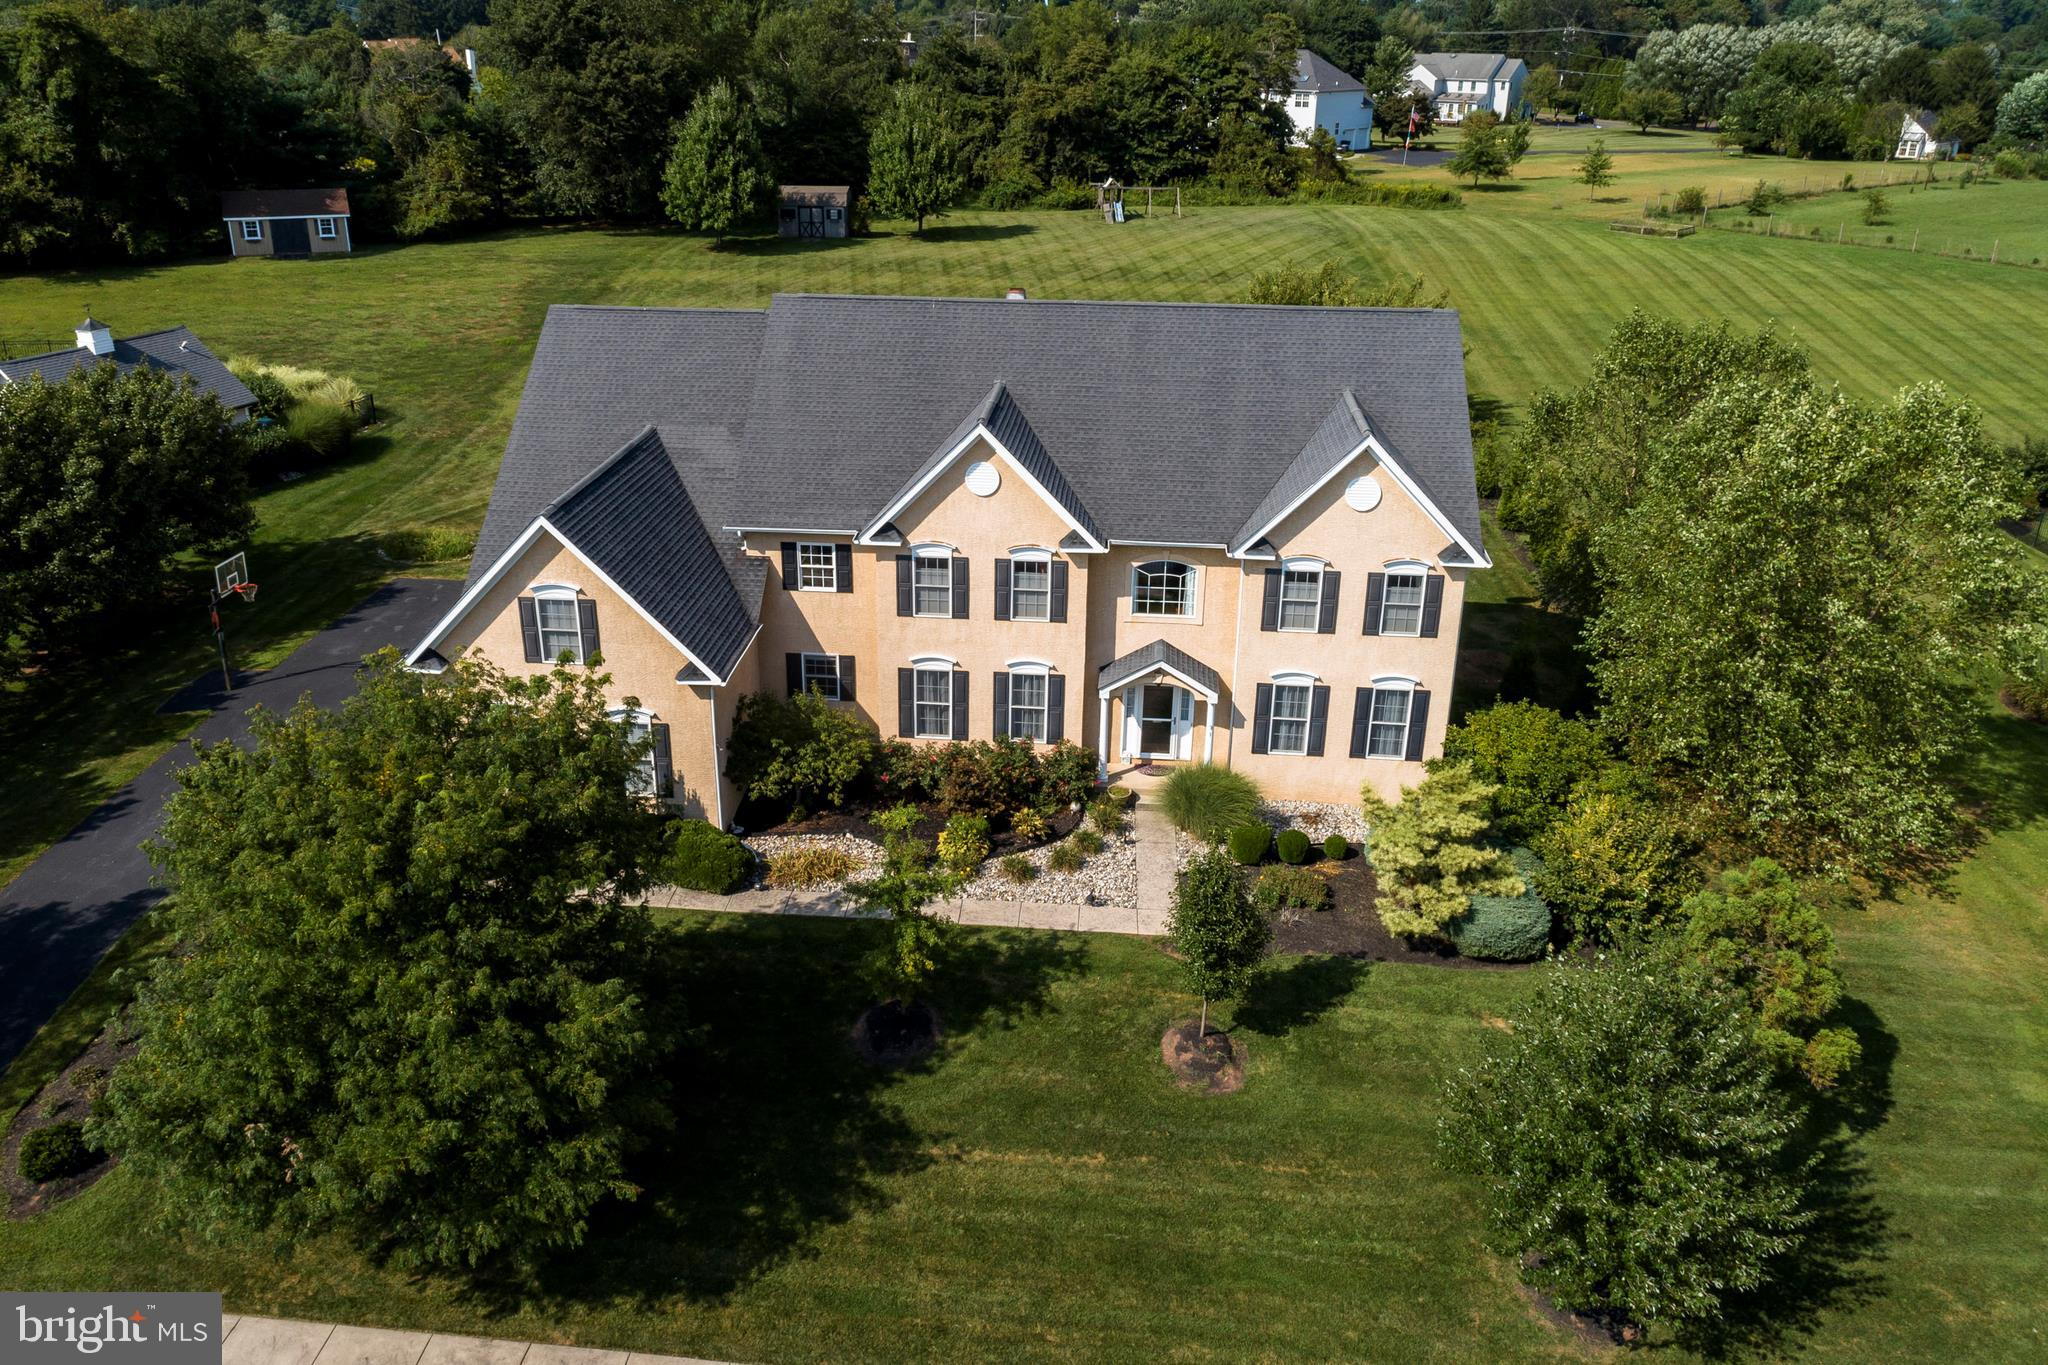 31 SPRING MILL LANE, COLLEGEVILLE, PA 19426